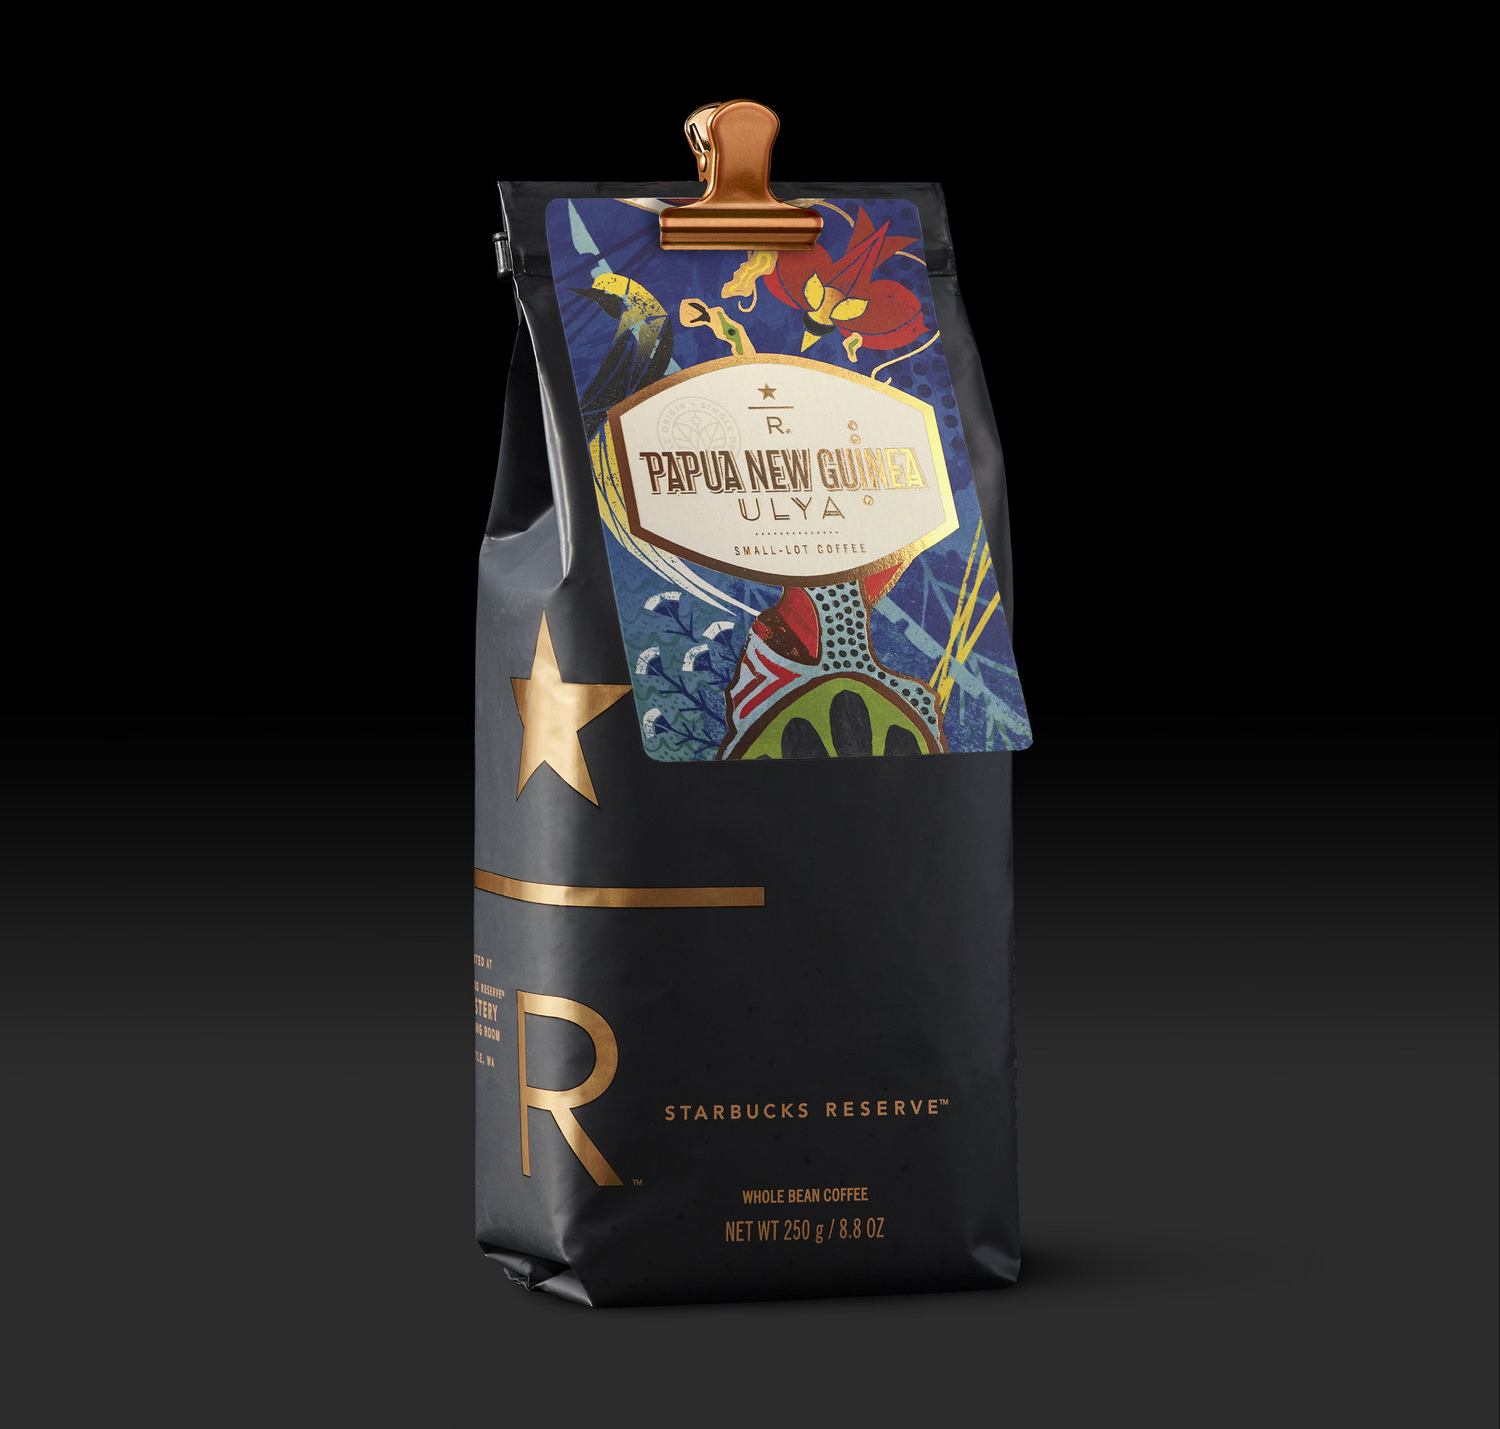 The scoop - The bags for hand scooped coffees offered at the Seattle Roastery were created with the location's black and copper design elements in mind. Each bag came with a coffee card, detailing the coffee within.